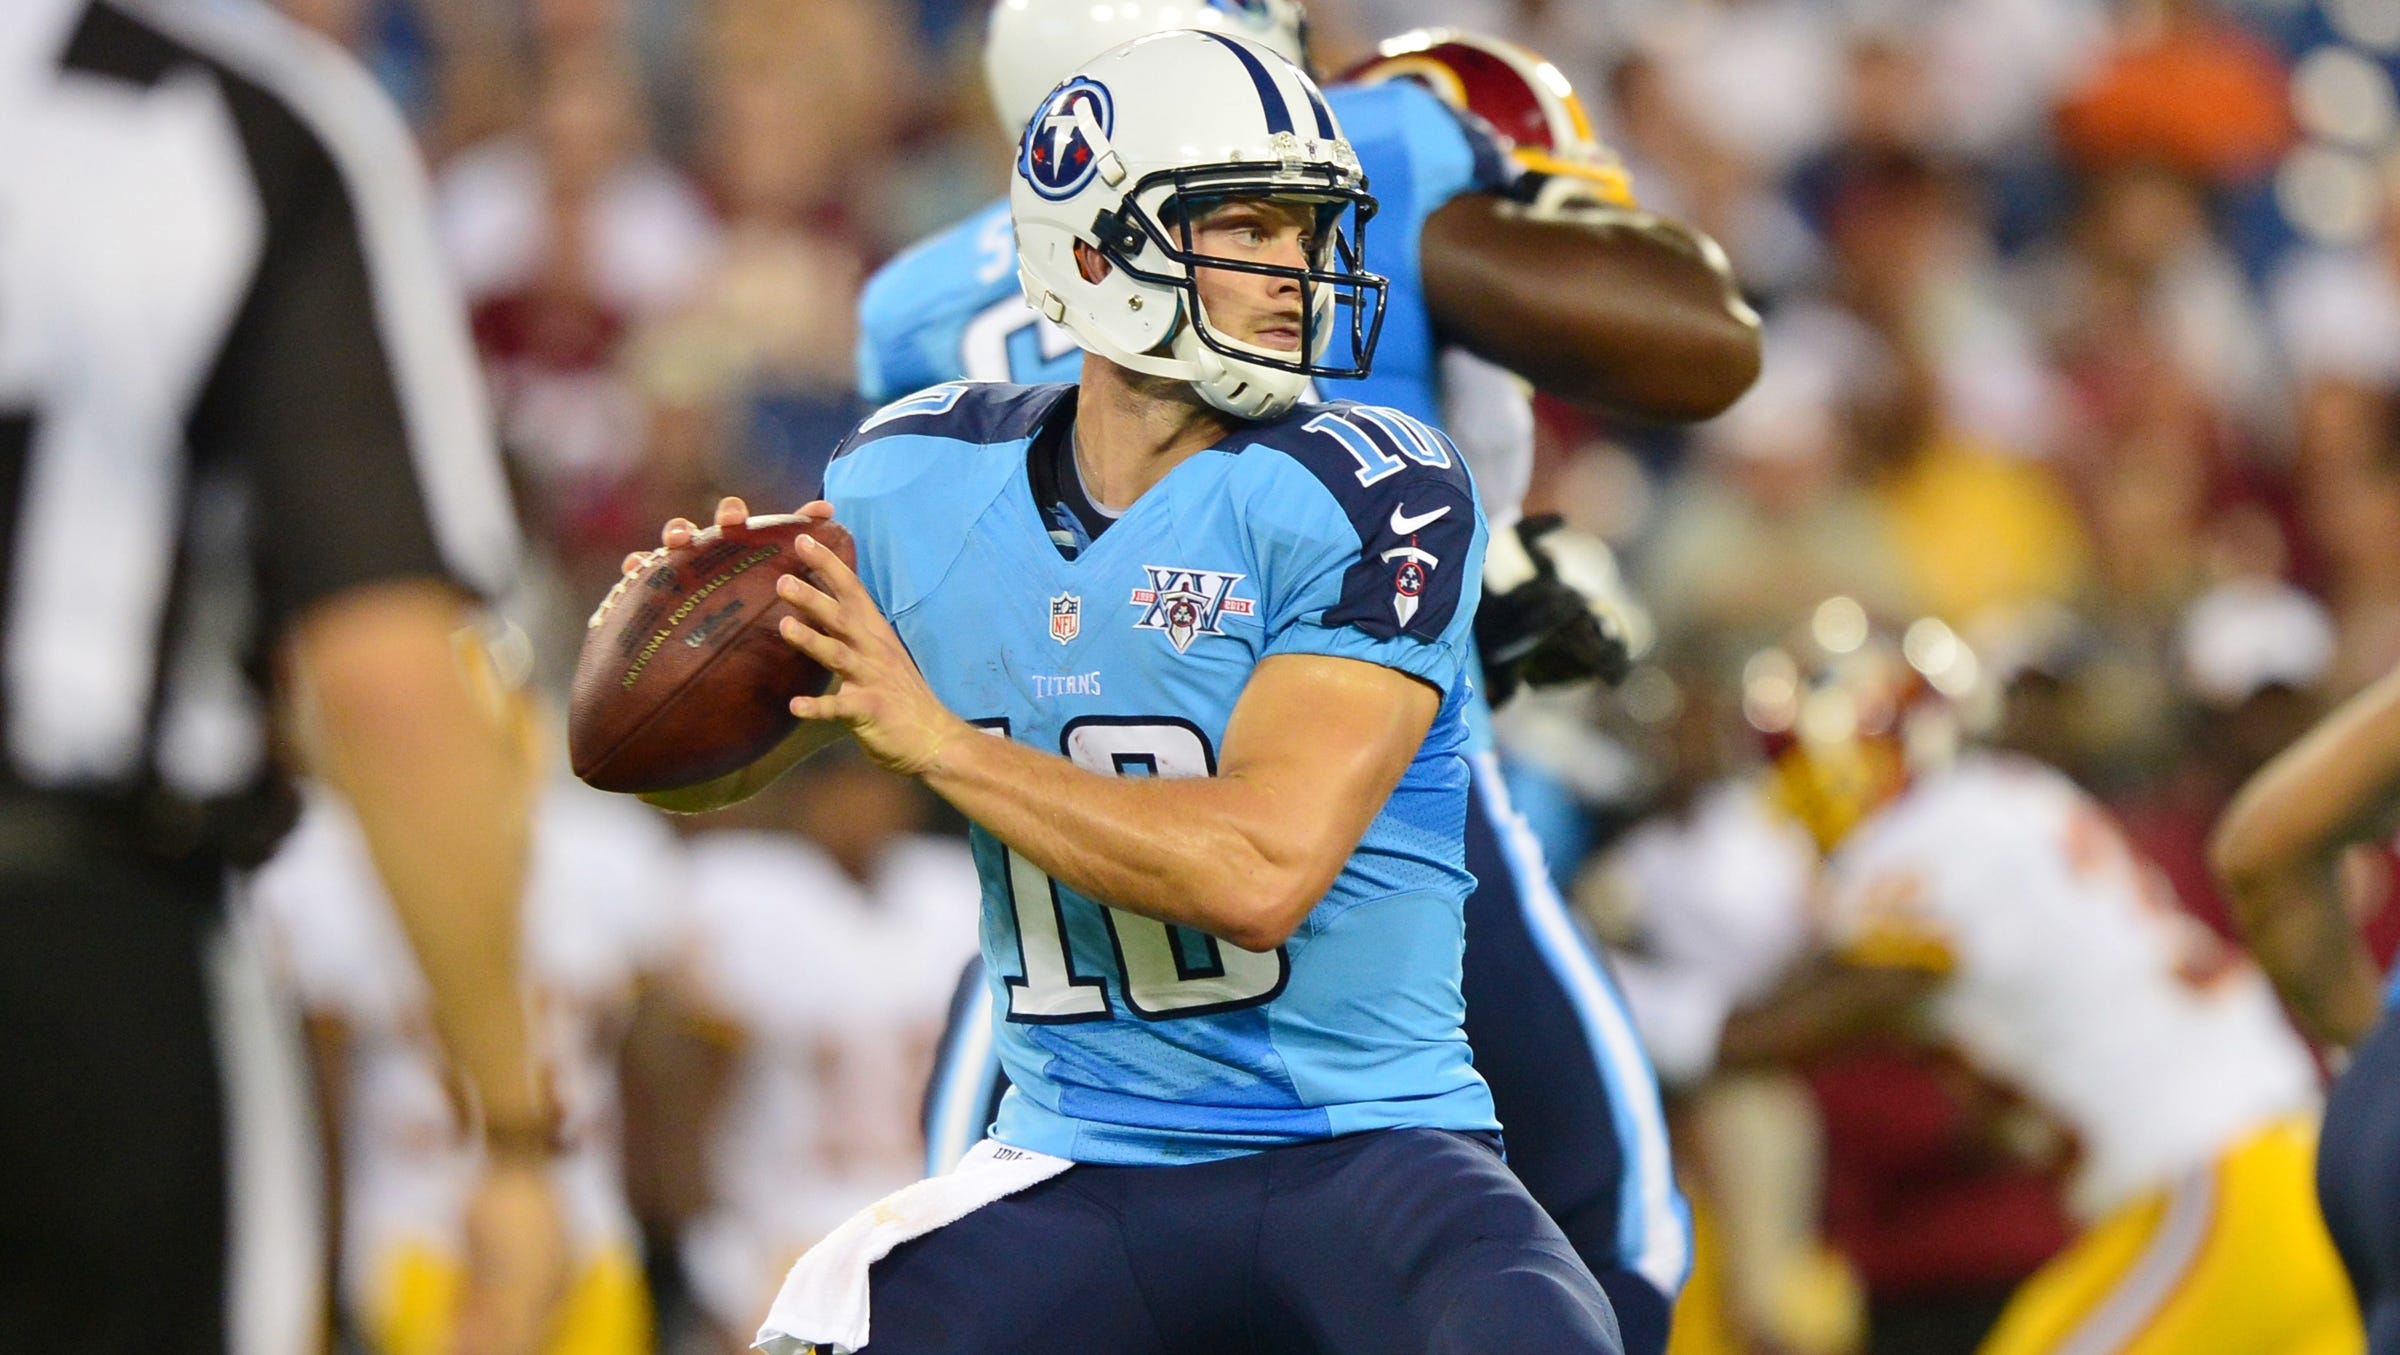 Tennessee Titans quarterback Jake Locker (10) passes against the Washington Redskins during the first half at LP Field.